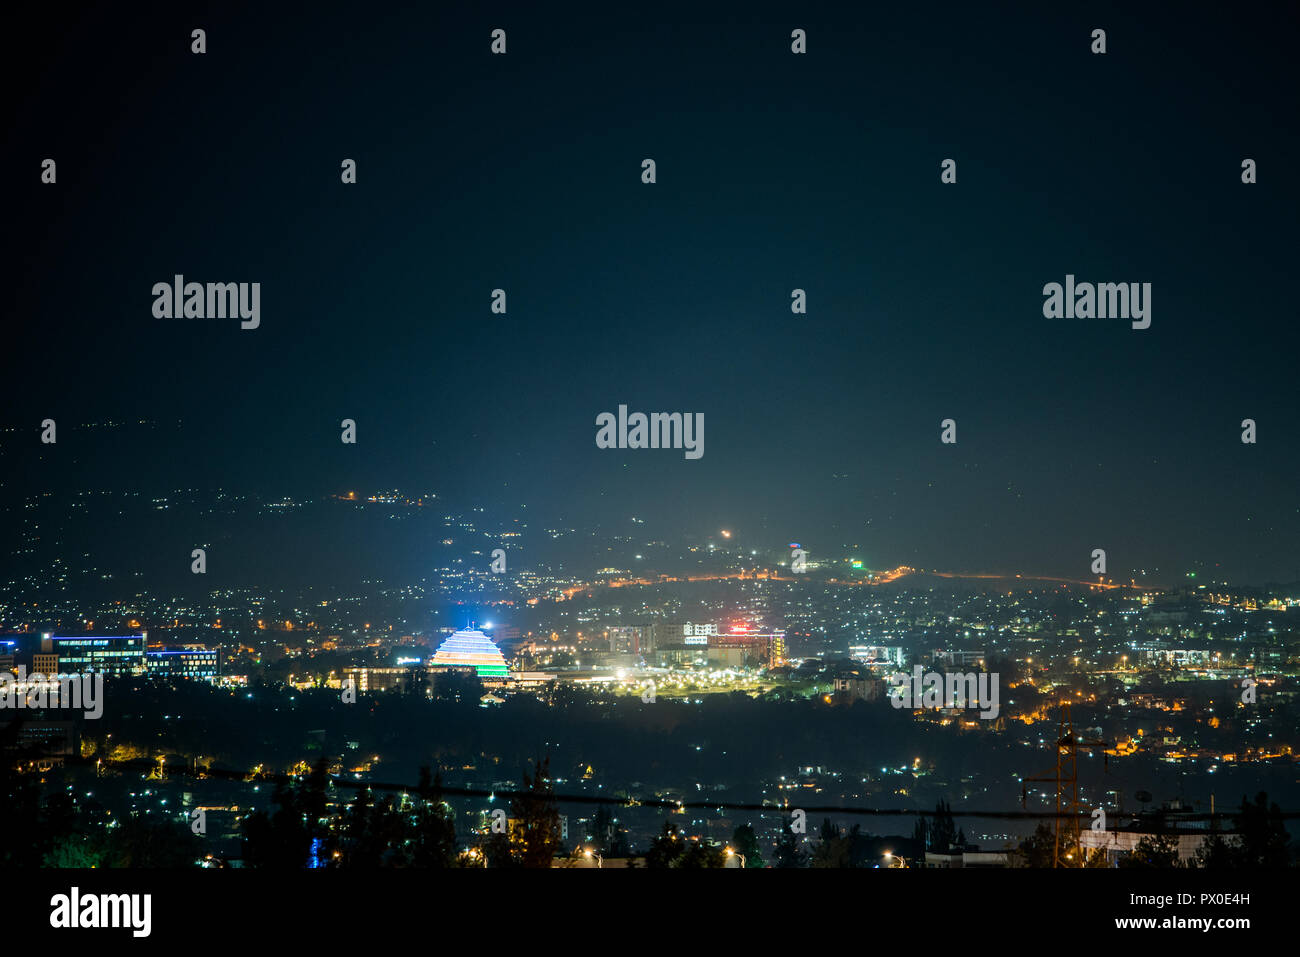 A wide view of city lights on the hills at night, with Kigali Convention Centre lit up in the colours of the Rwandan - Stock Image